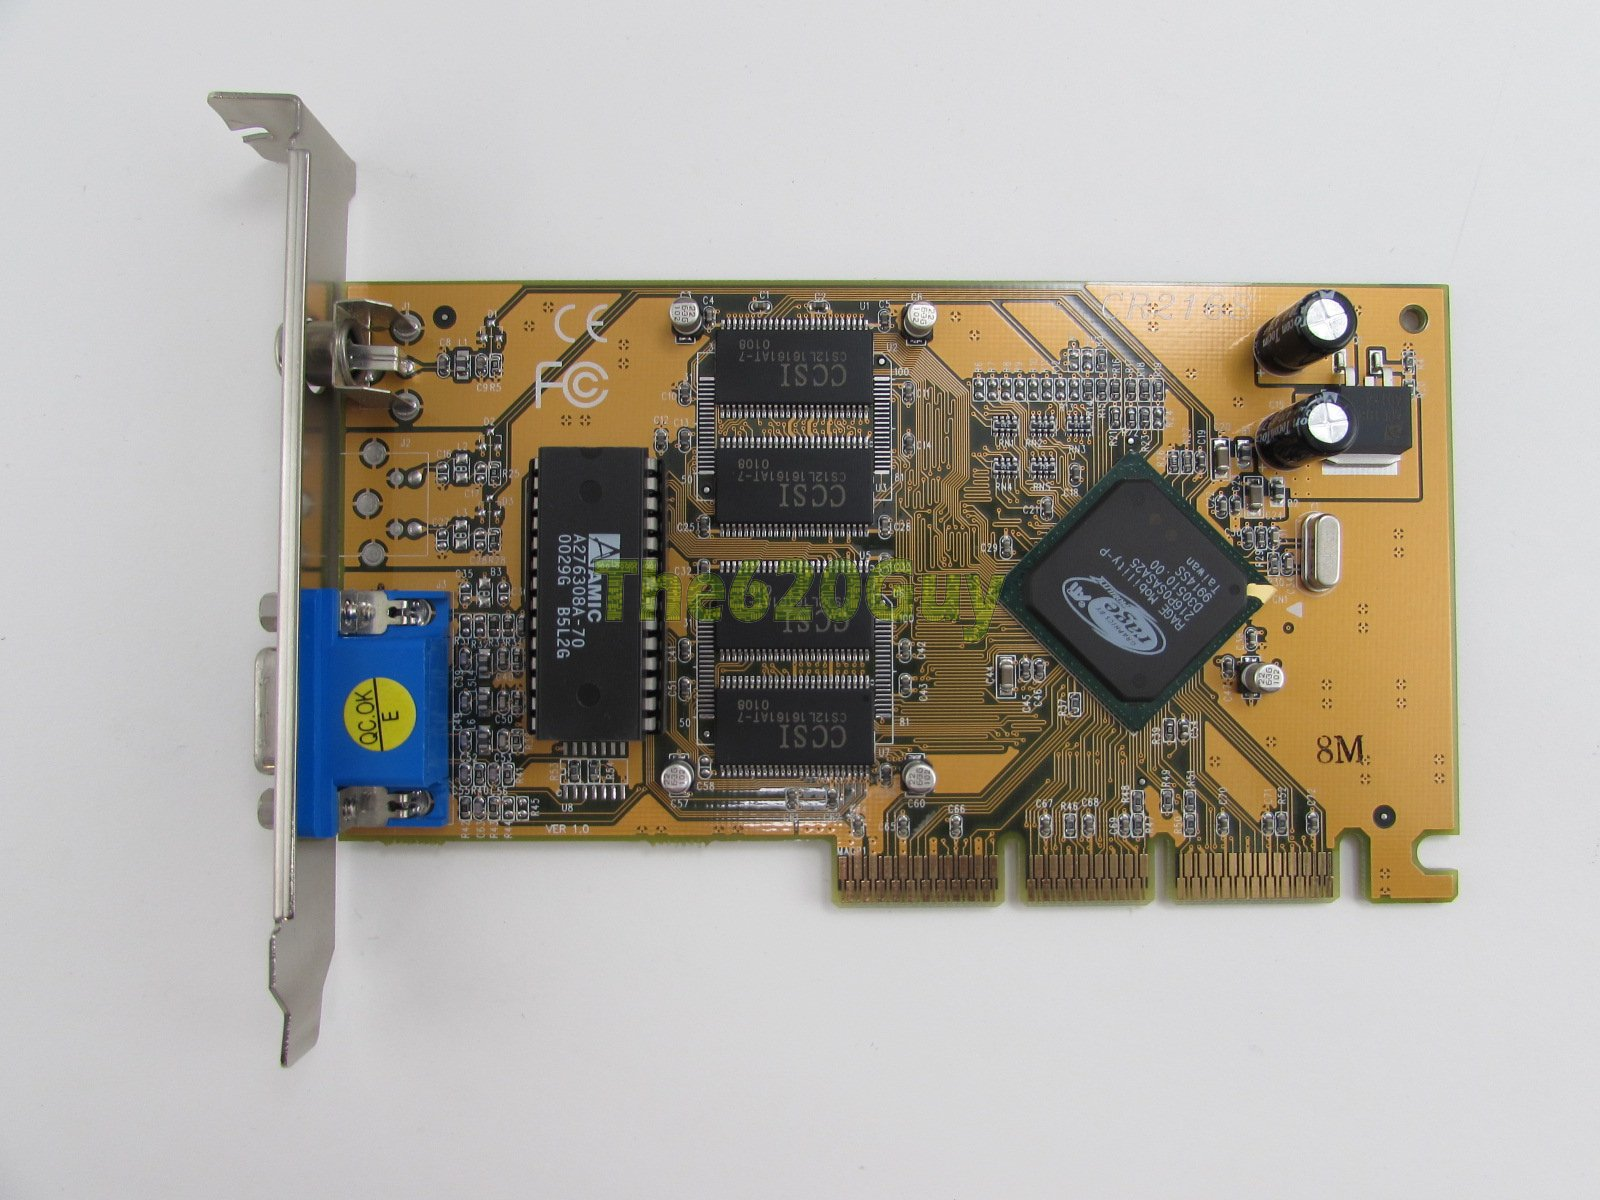 Ati Cr216s Rage Mobility 8mb 64 Bit Sdr Dx5 Vga Rca Agp 2x Video To Circuit Pictures Photos Might Not Be Of Actual Item